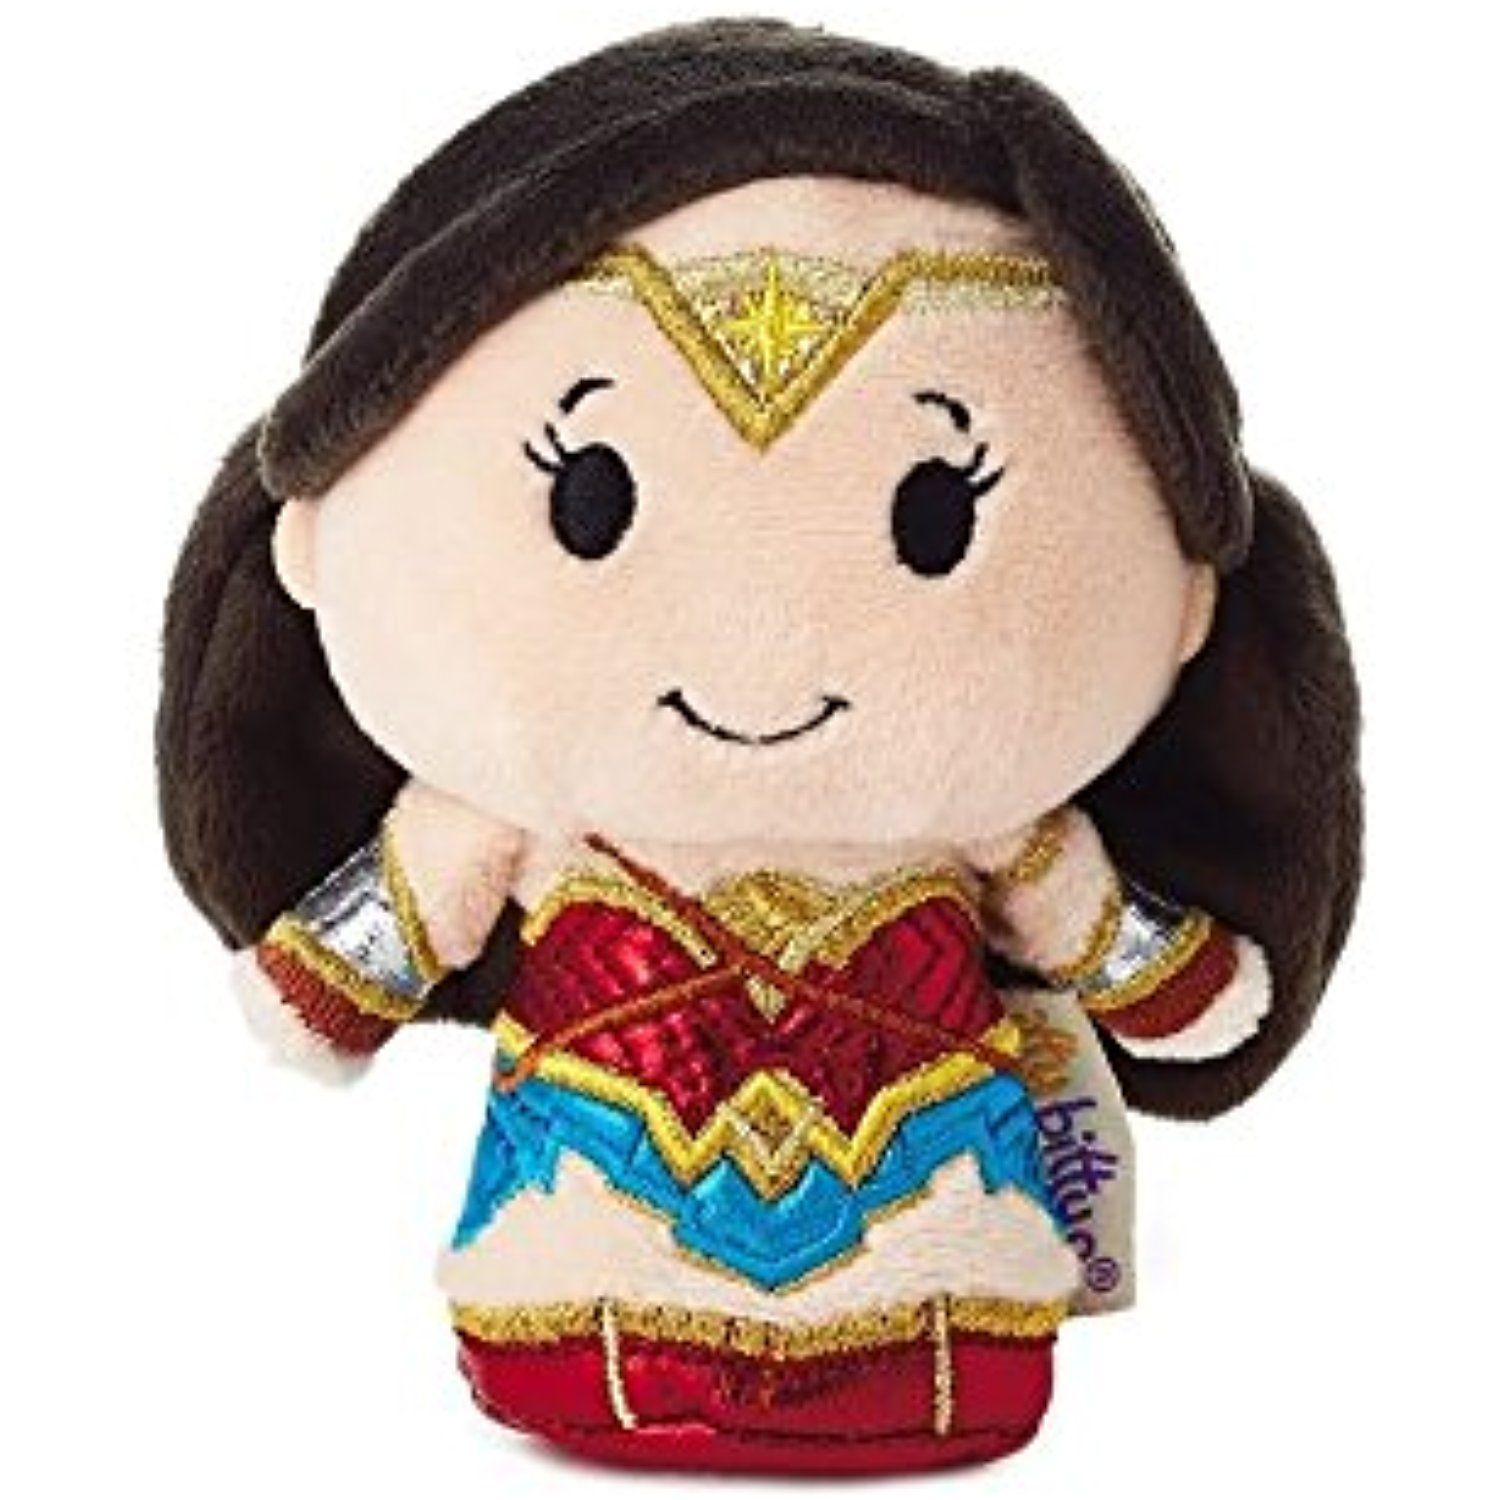 Itty Bittys Wonder Woman Movie Stuffed Animal Limited Edition Read More At The Image Link This Is An Affiliate Link Pl Itty Itty Bitty Disney Figurines